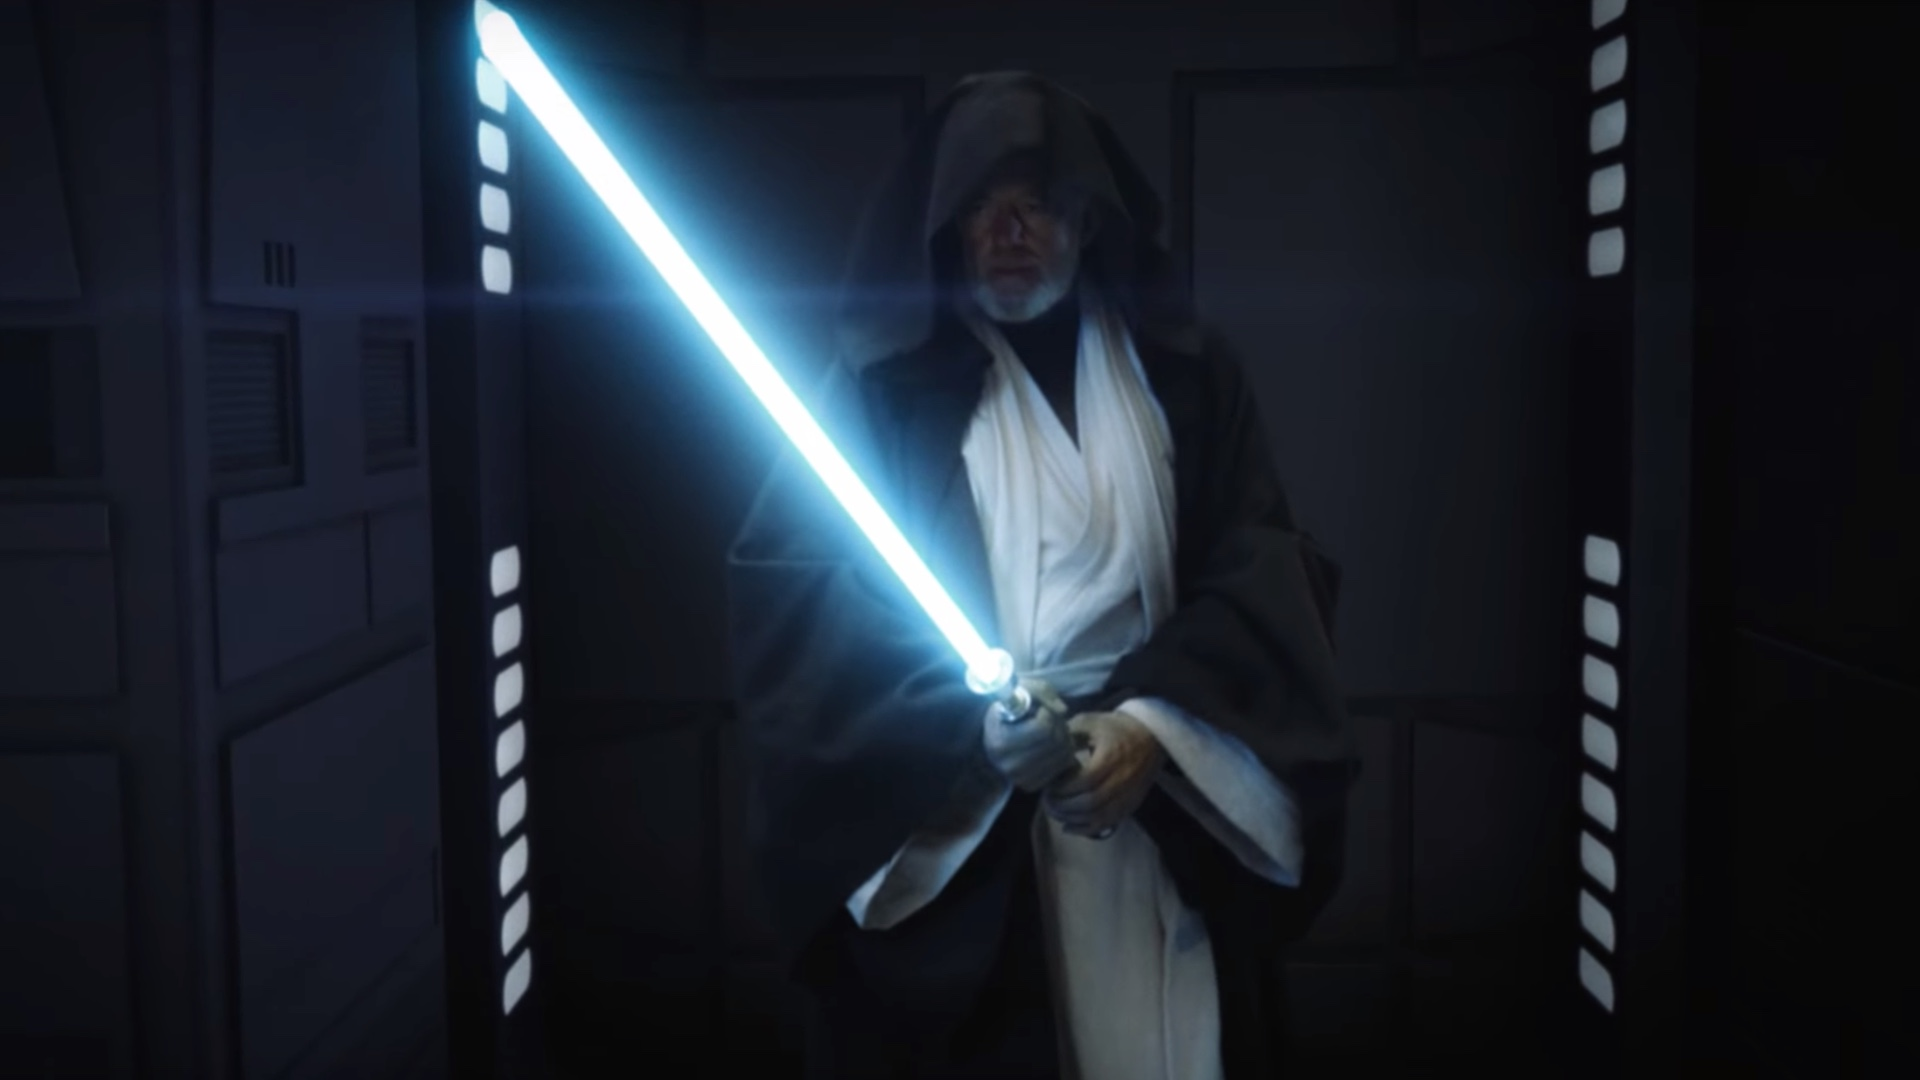 Stunning Reimagining Of The Climactic Lightsaber Duel Between Darth Vader And Obi Wan Kenobi In A New Hope Geektyrant